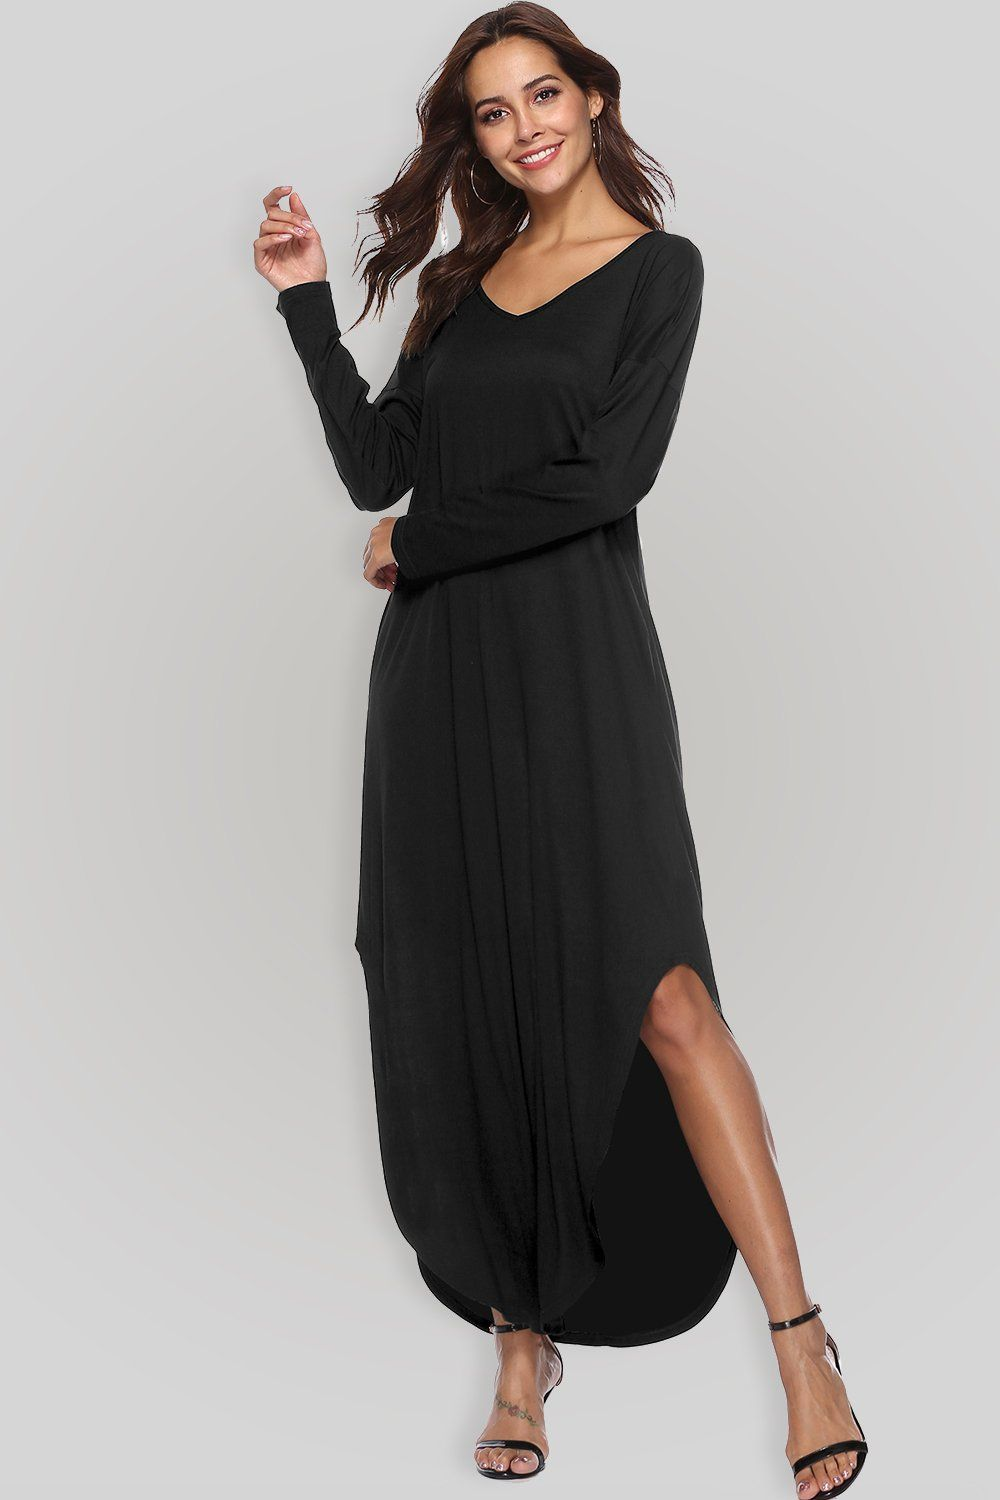 Womenus casual long sleeve slit solid party summer vneck long maxi